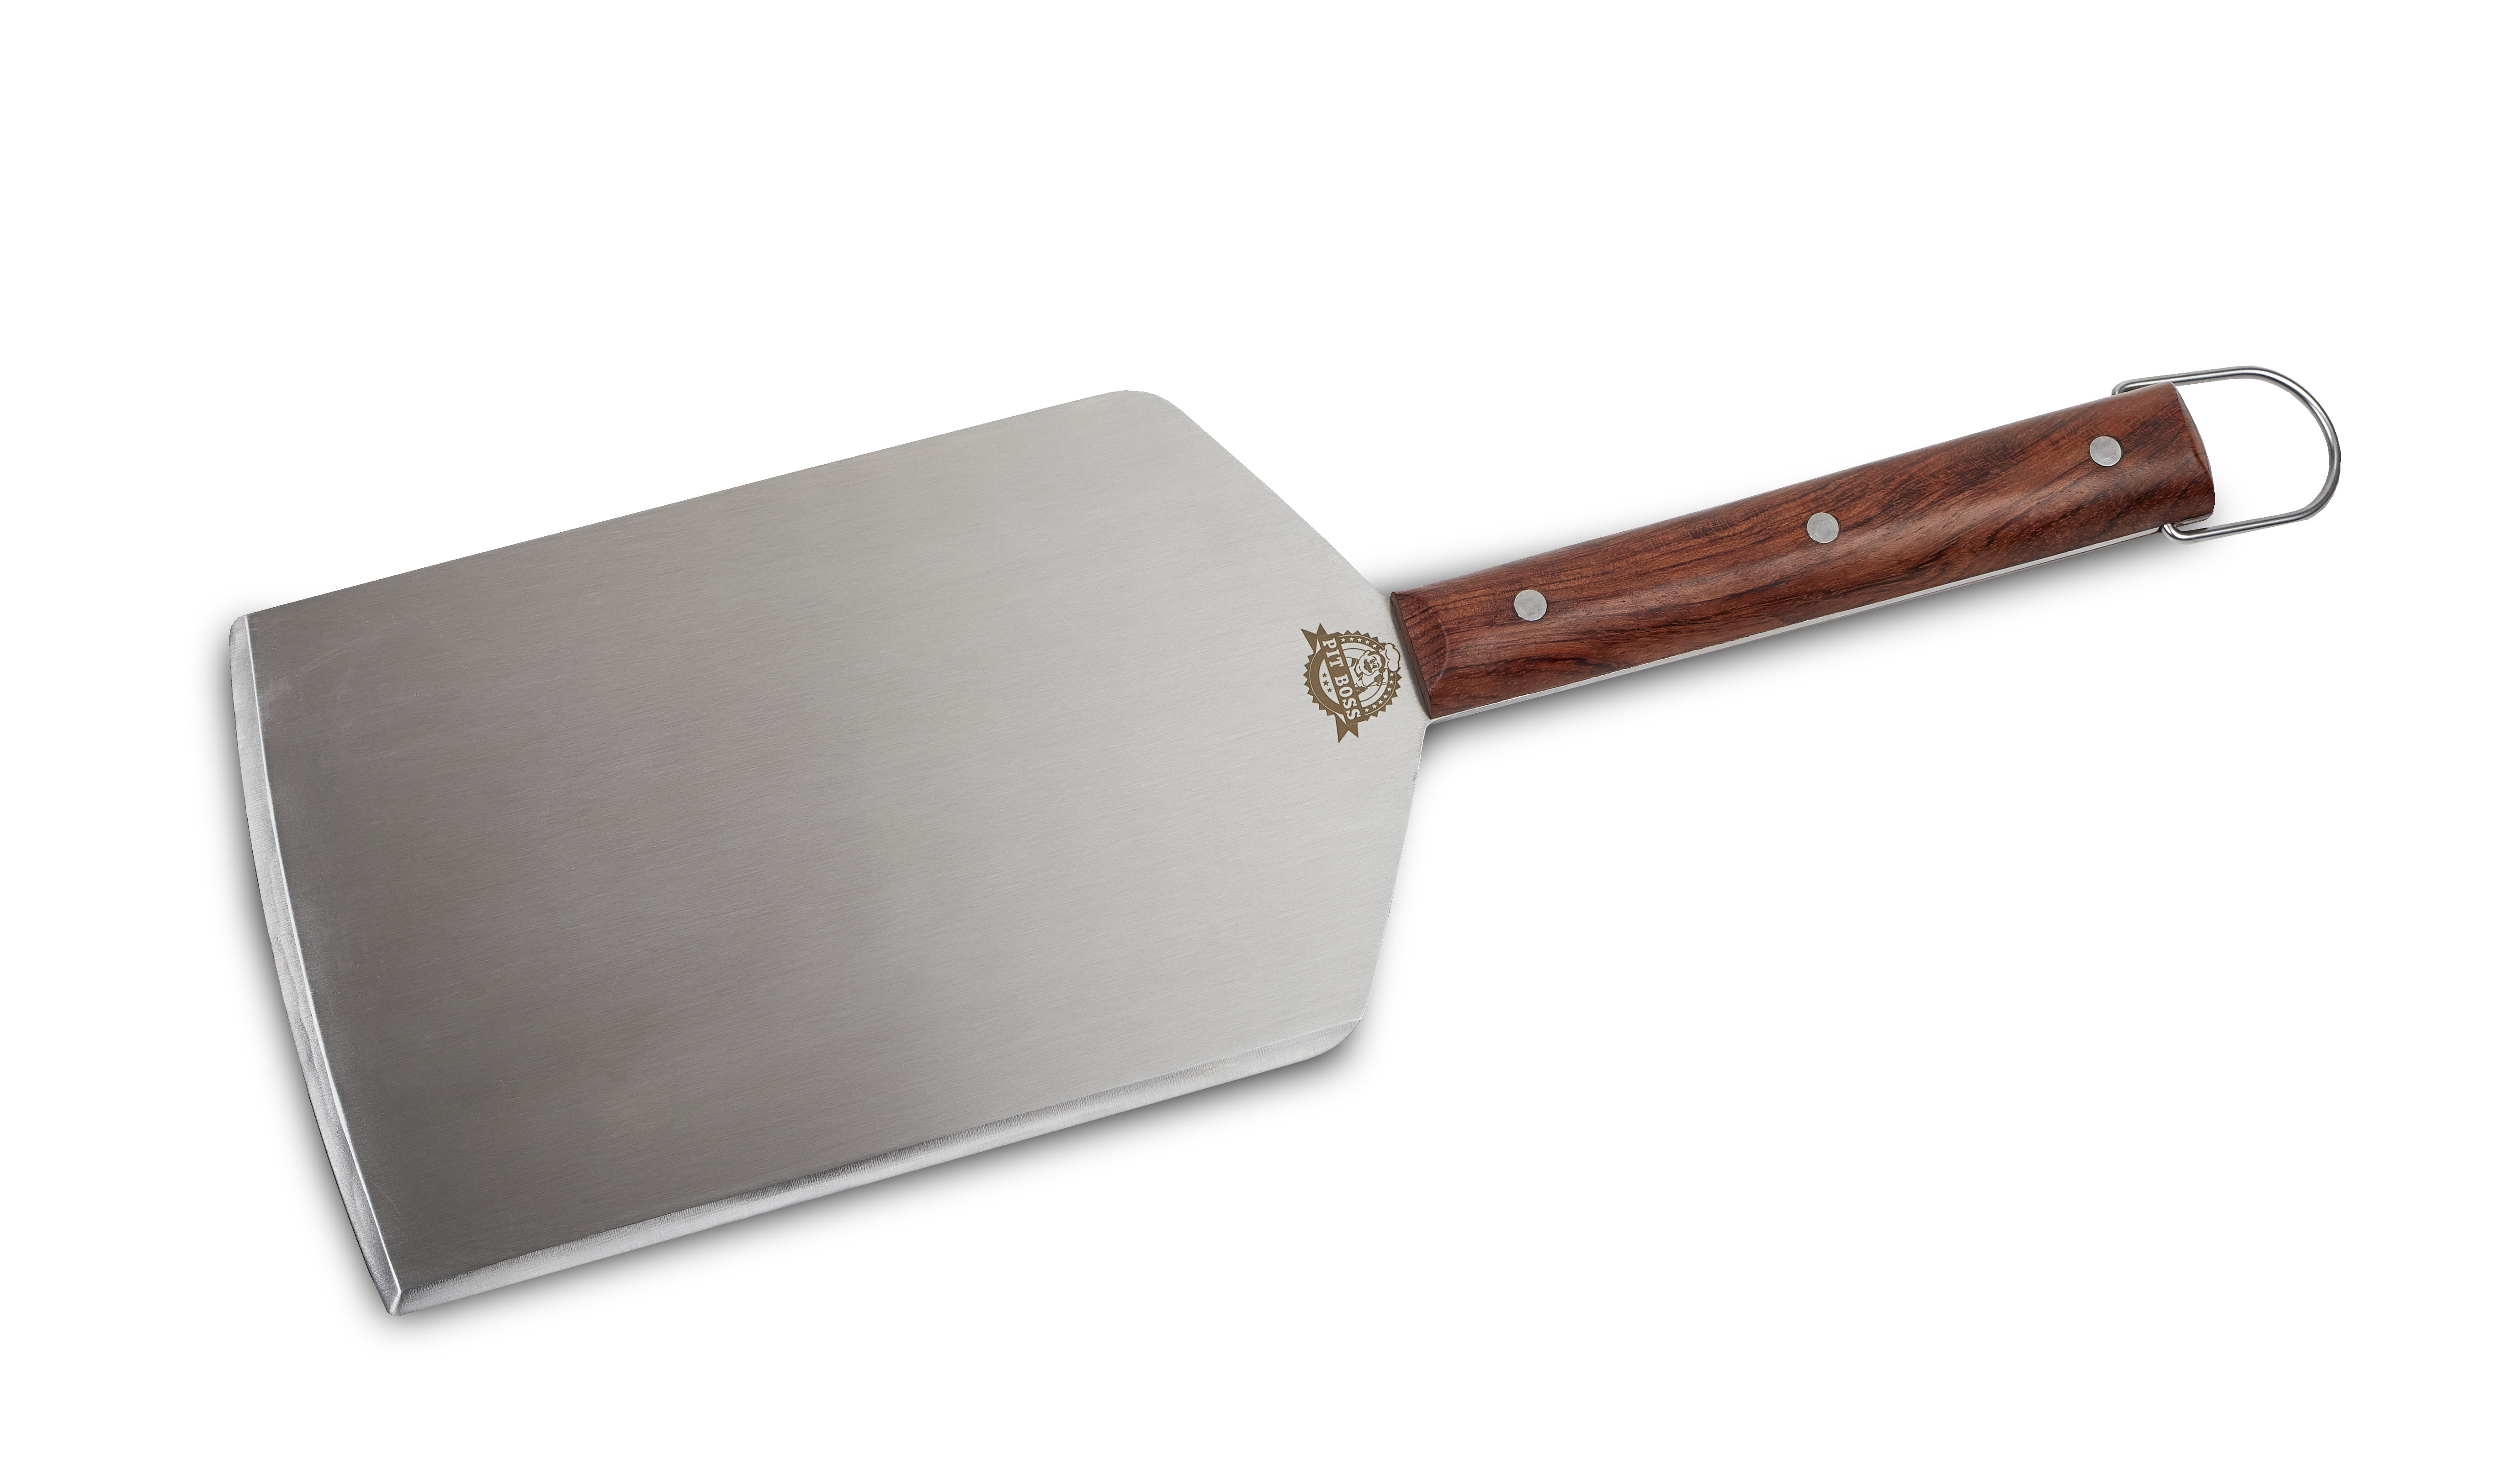 Pit Boss Large Cut BBQ Grill Spatula - Stainless Steel w/ Rosewood Handle